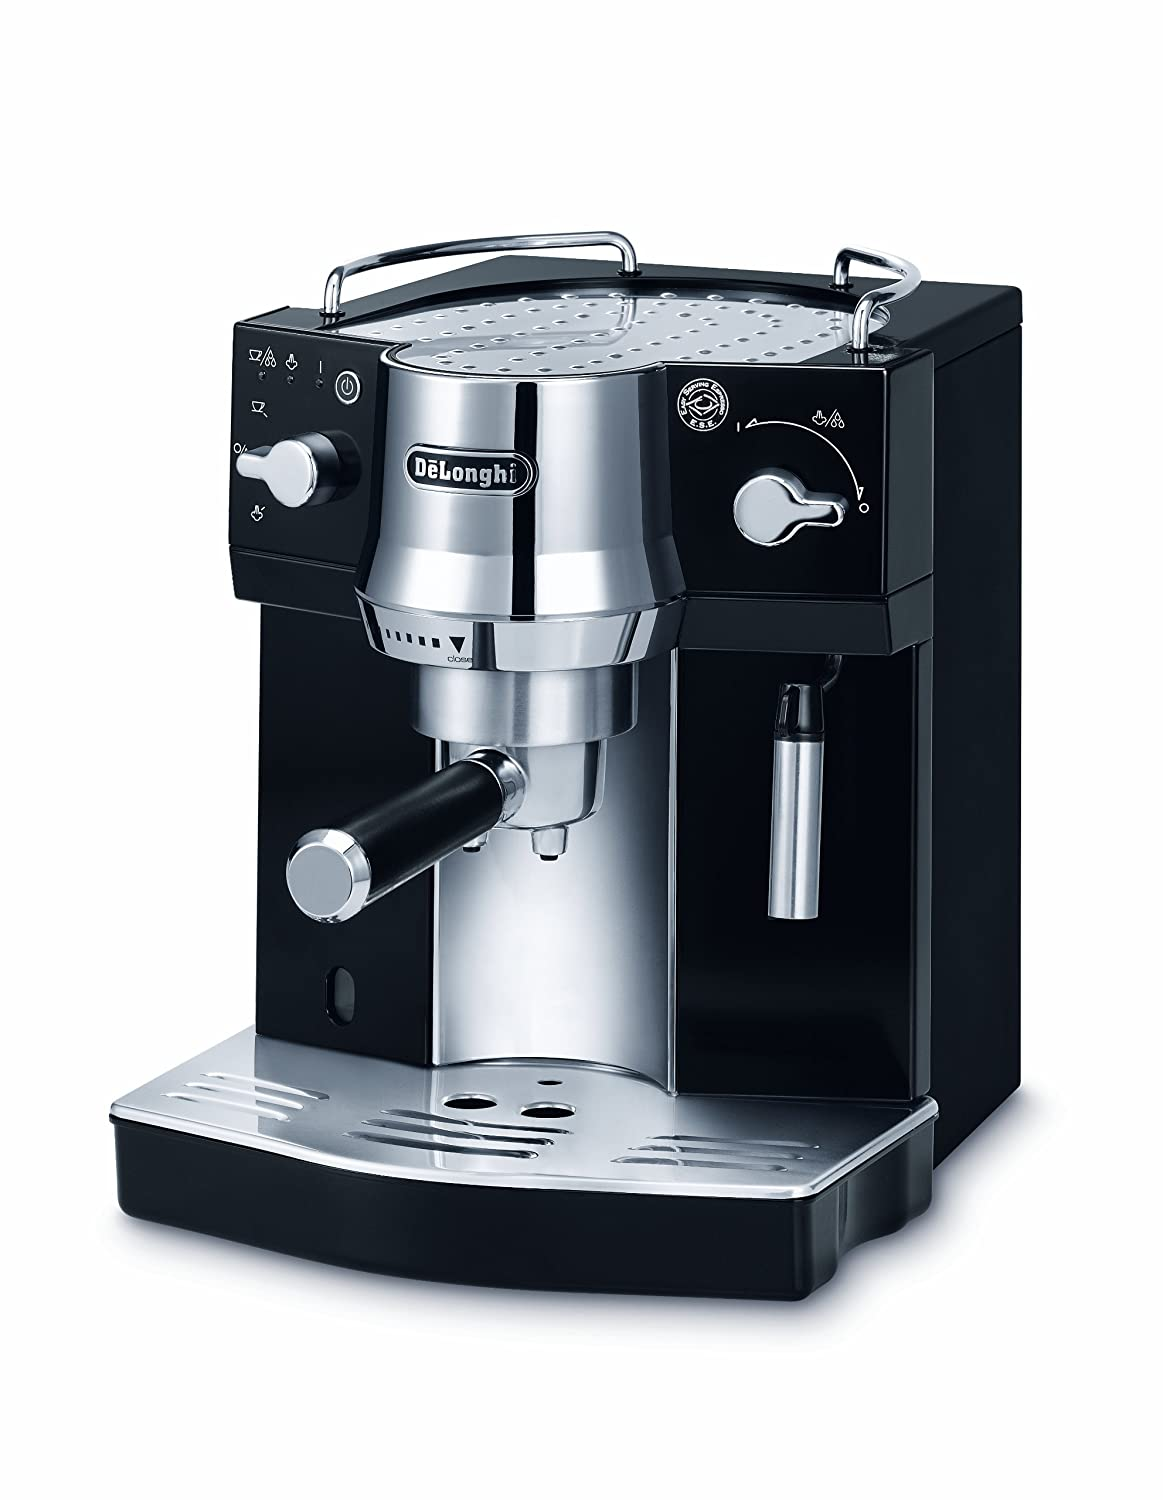 de 39 longhi pump espresso coffee machine ec820 b black ebay. Black Bedroom Furniture Sets. Home Design Ideas